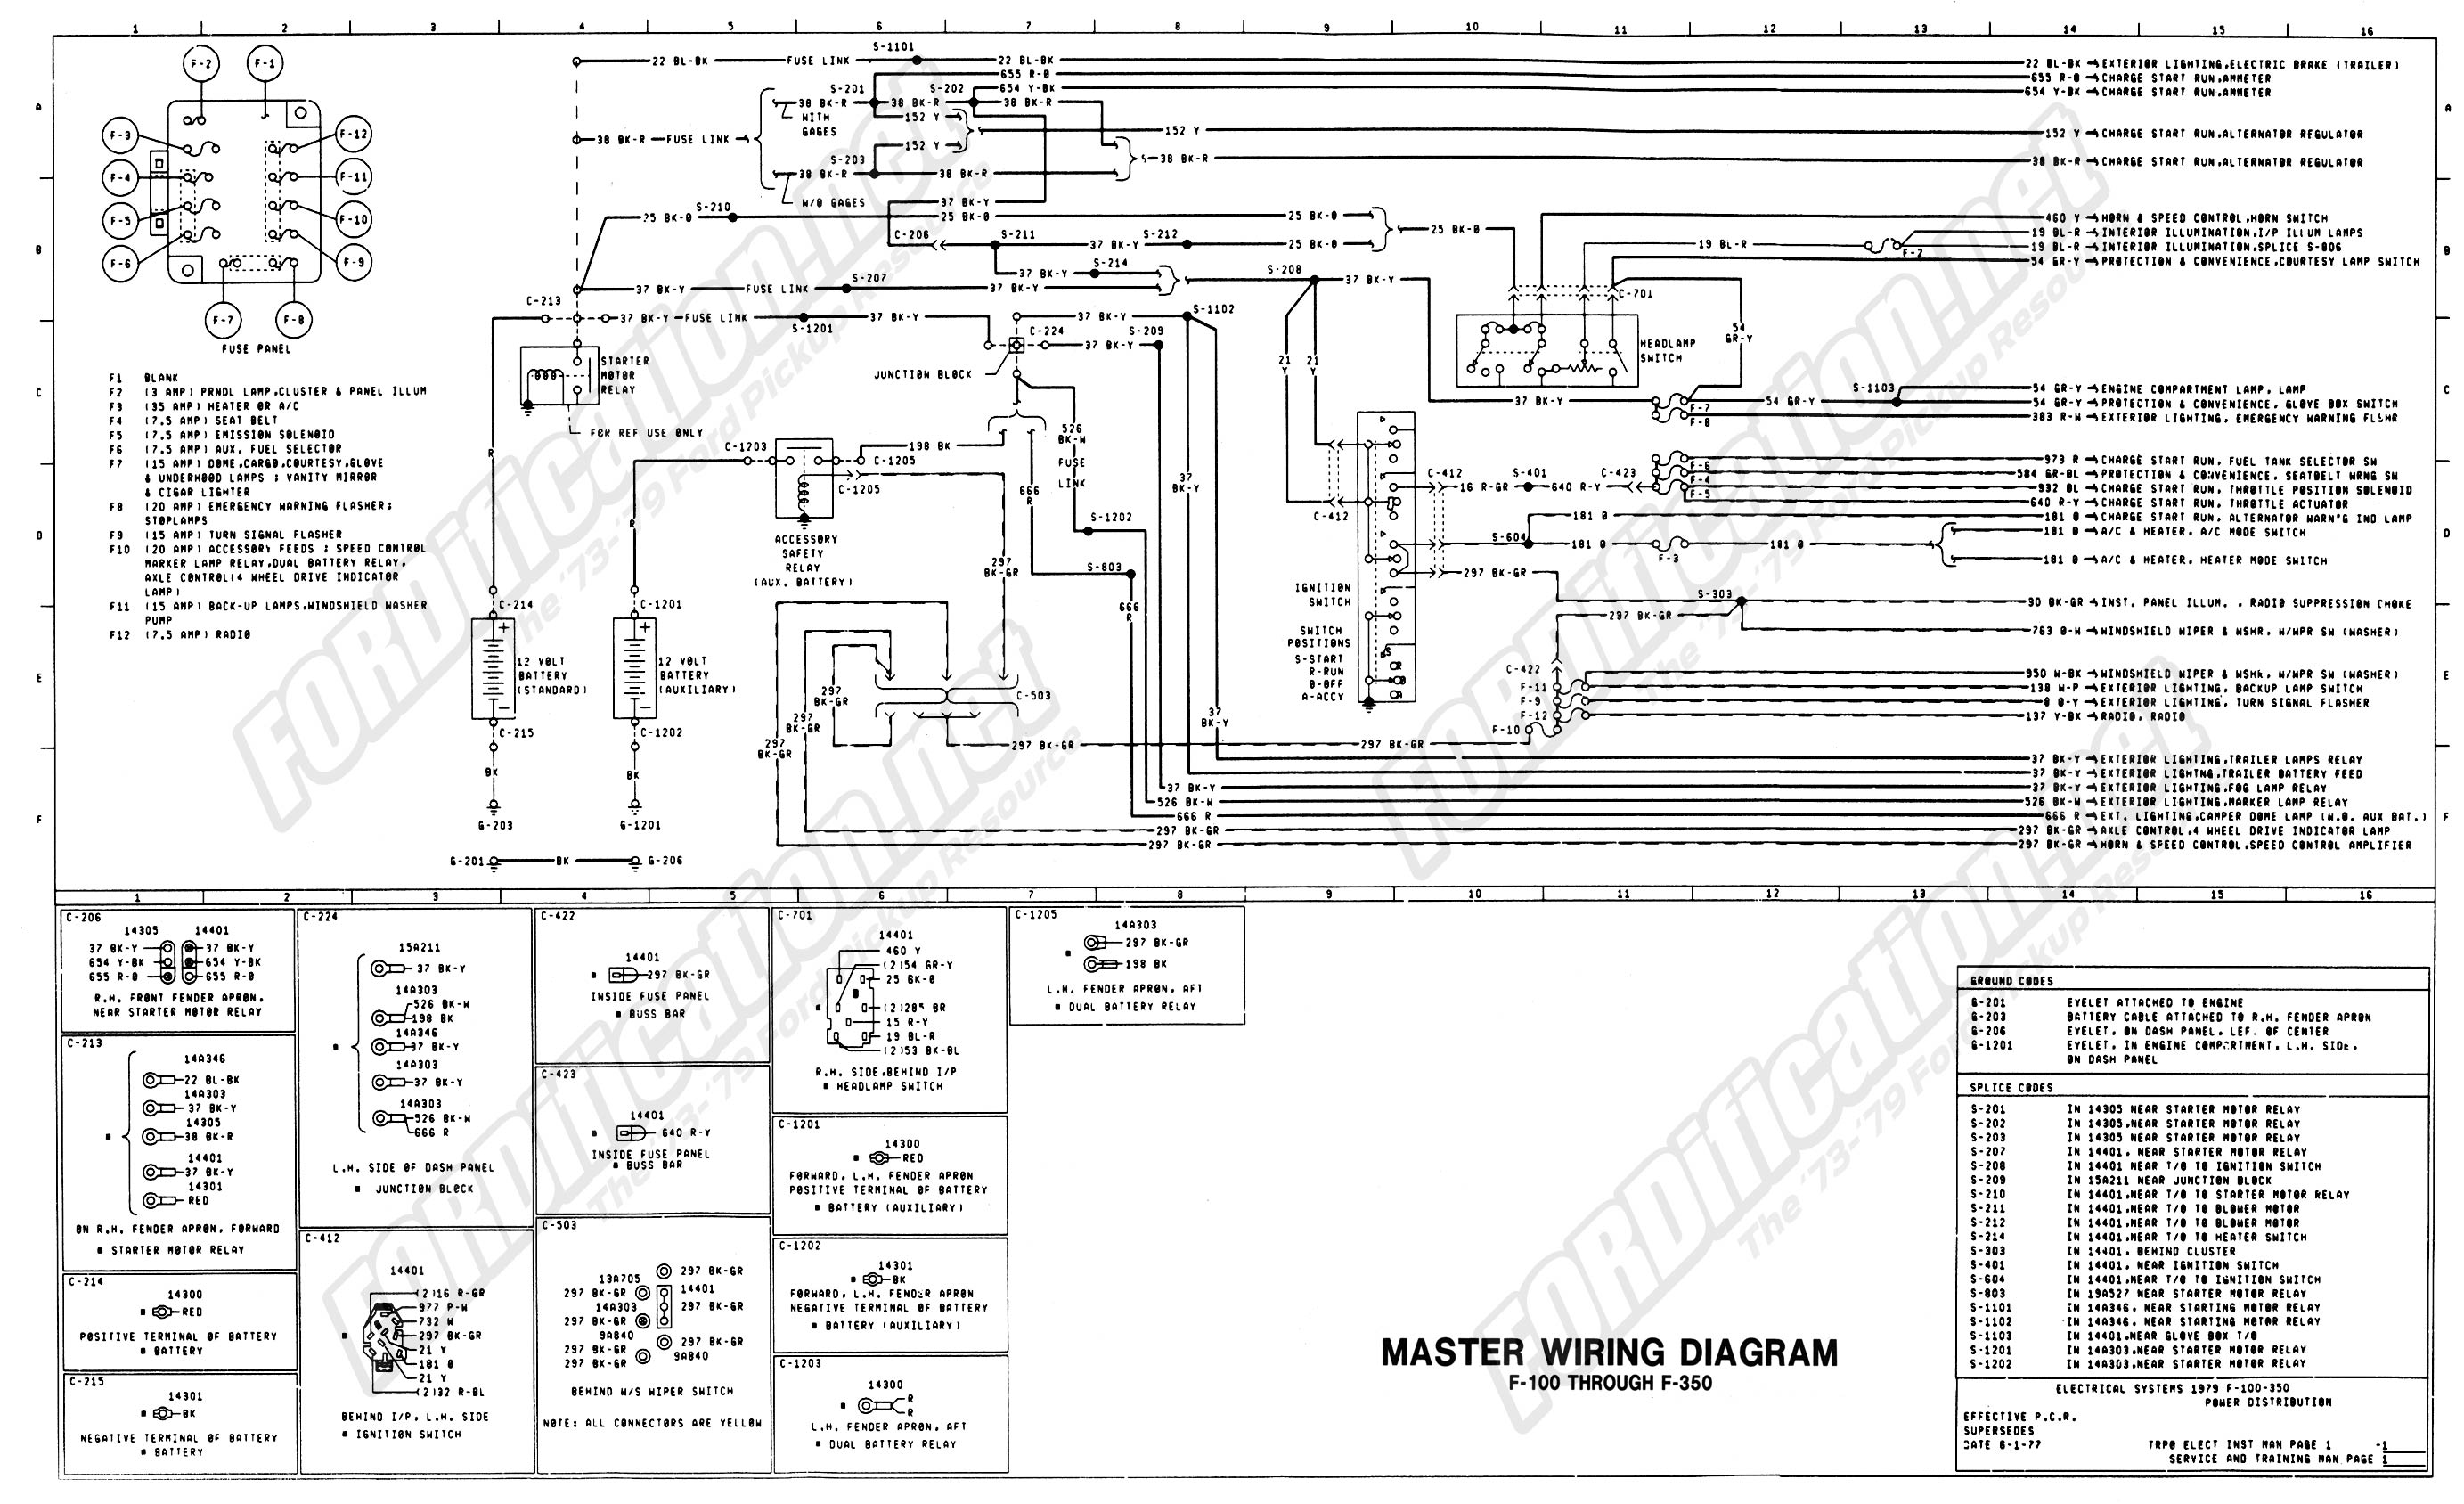 wiring_79master_1of9 1973 1979 ford truck wiring diagrams & schematics fordification net Chevy Ignition Switch Wiring Diagram at bakdesigns.co